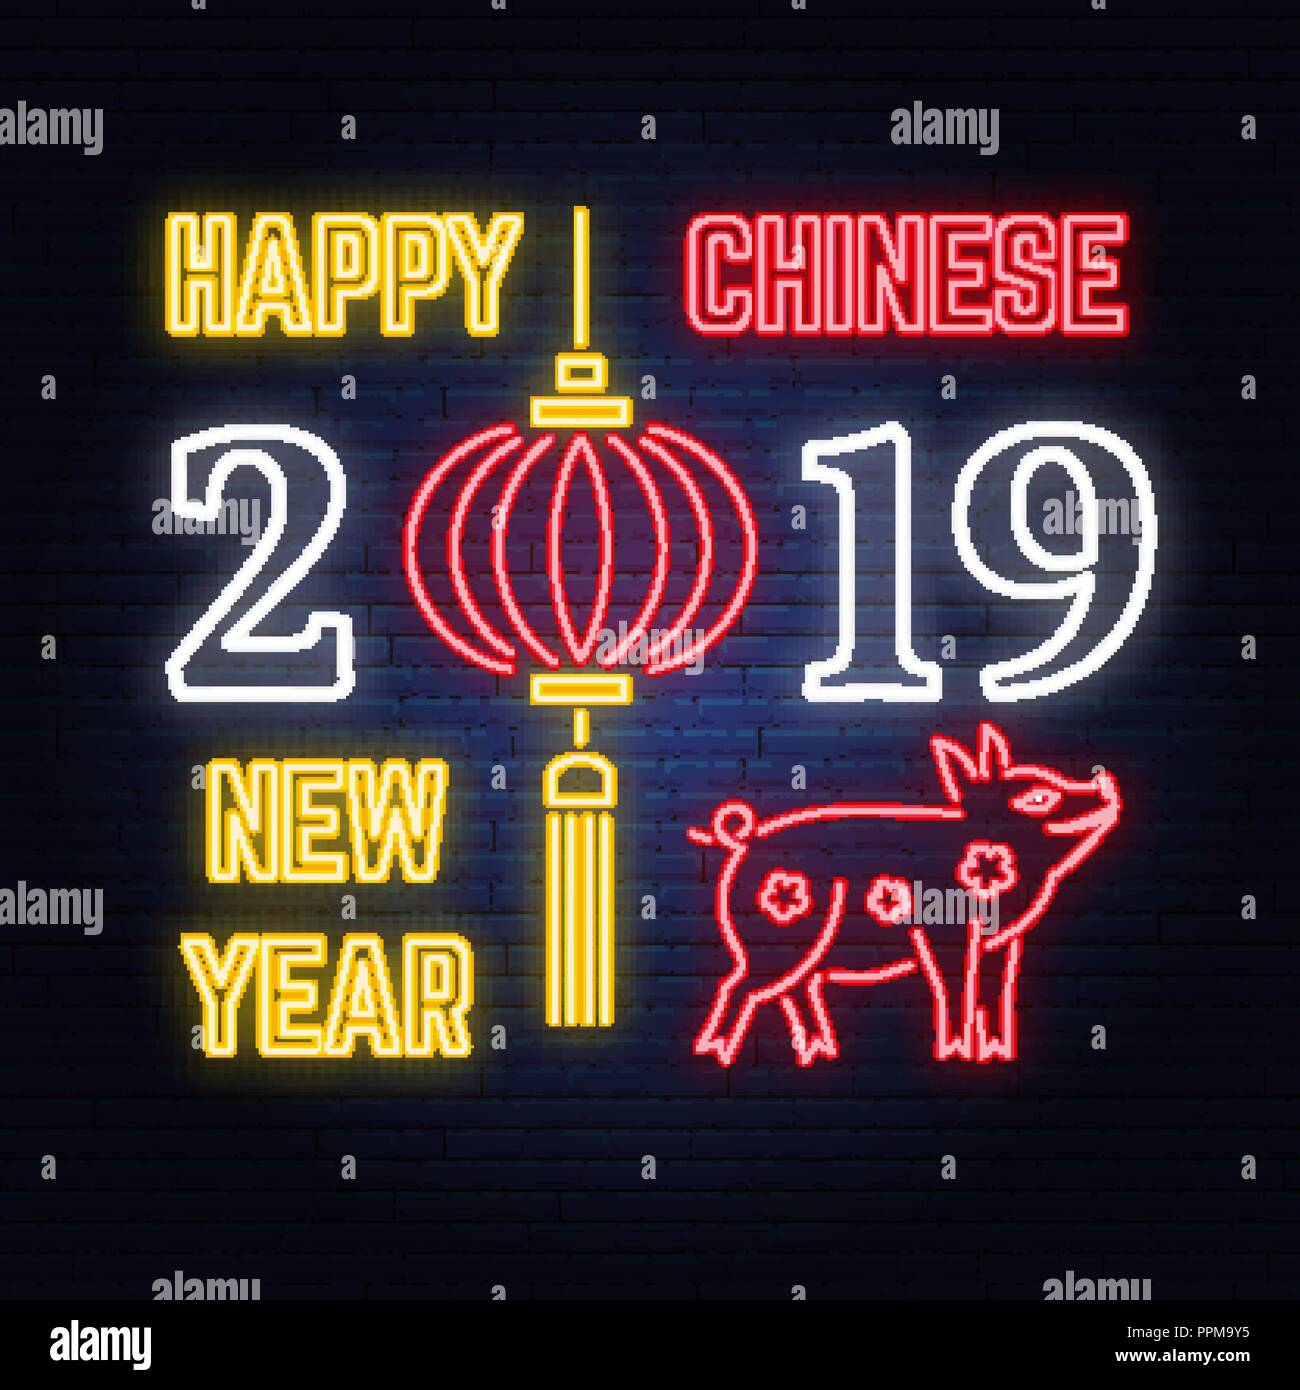 Happy Chinese New Year 2019 neon sign with Pig and Chinese